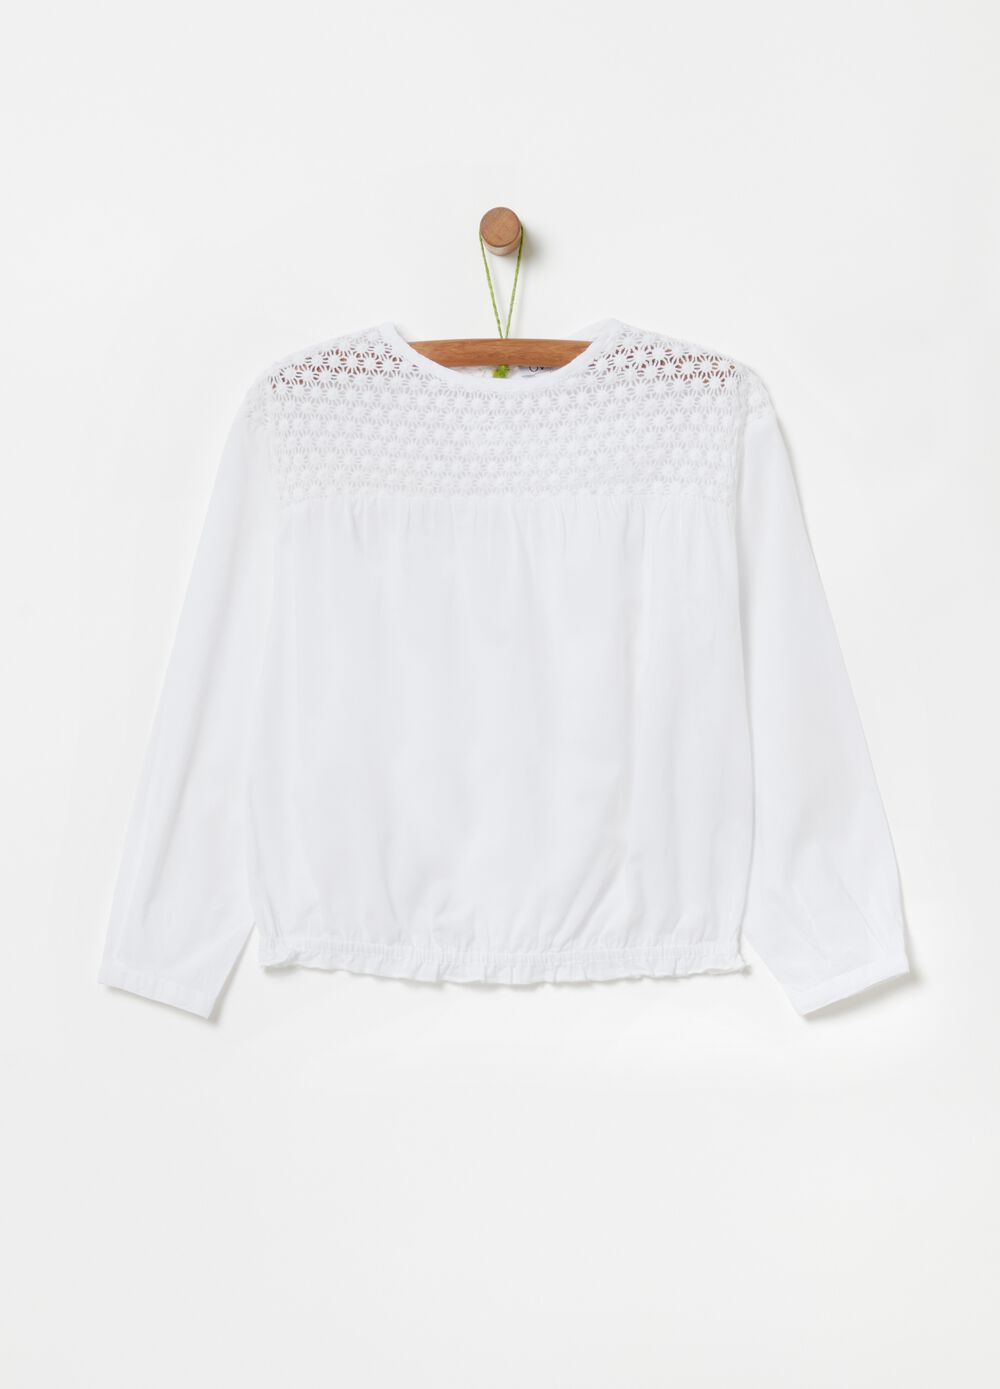 100% organic cotton macramé blouse